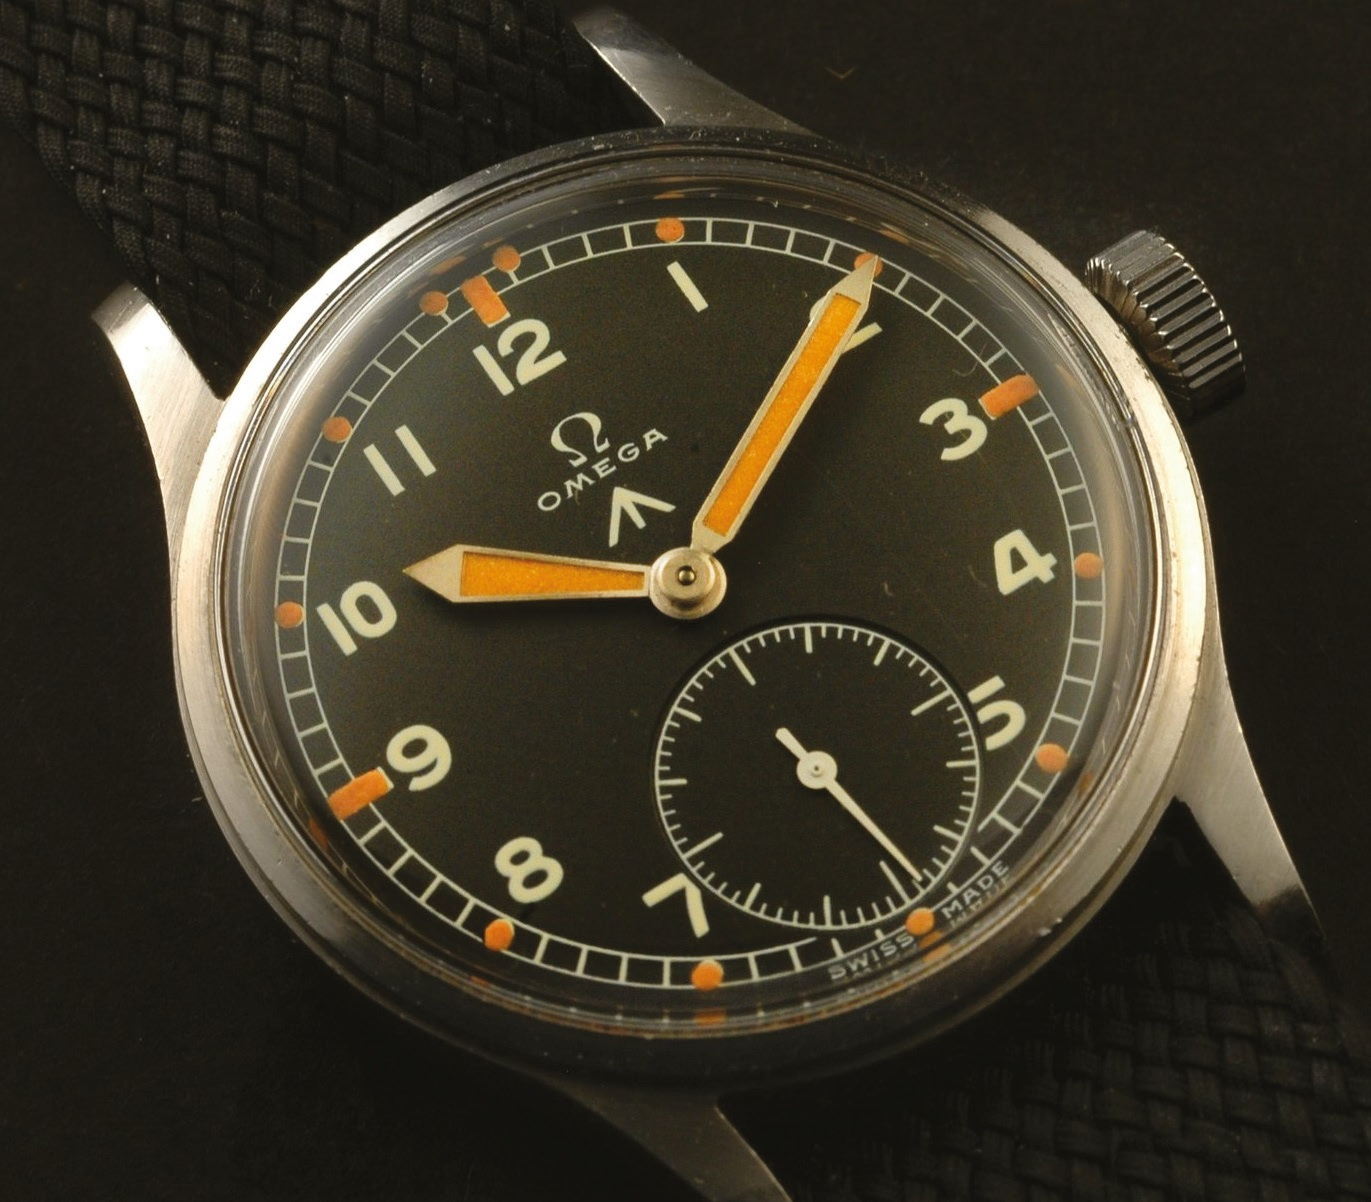 An Omega WWW watch, one of the Dirty Dozen military watches